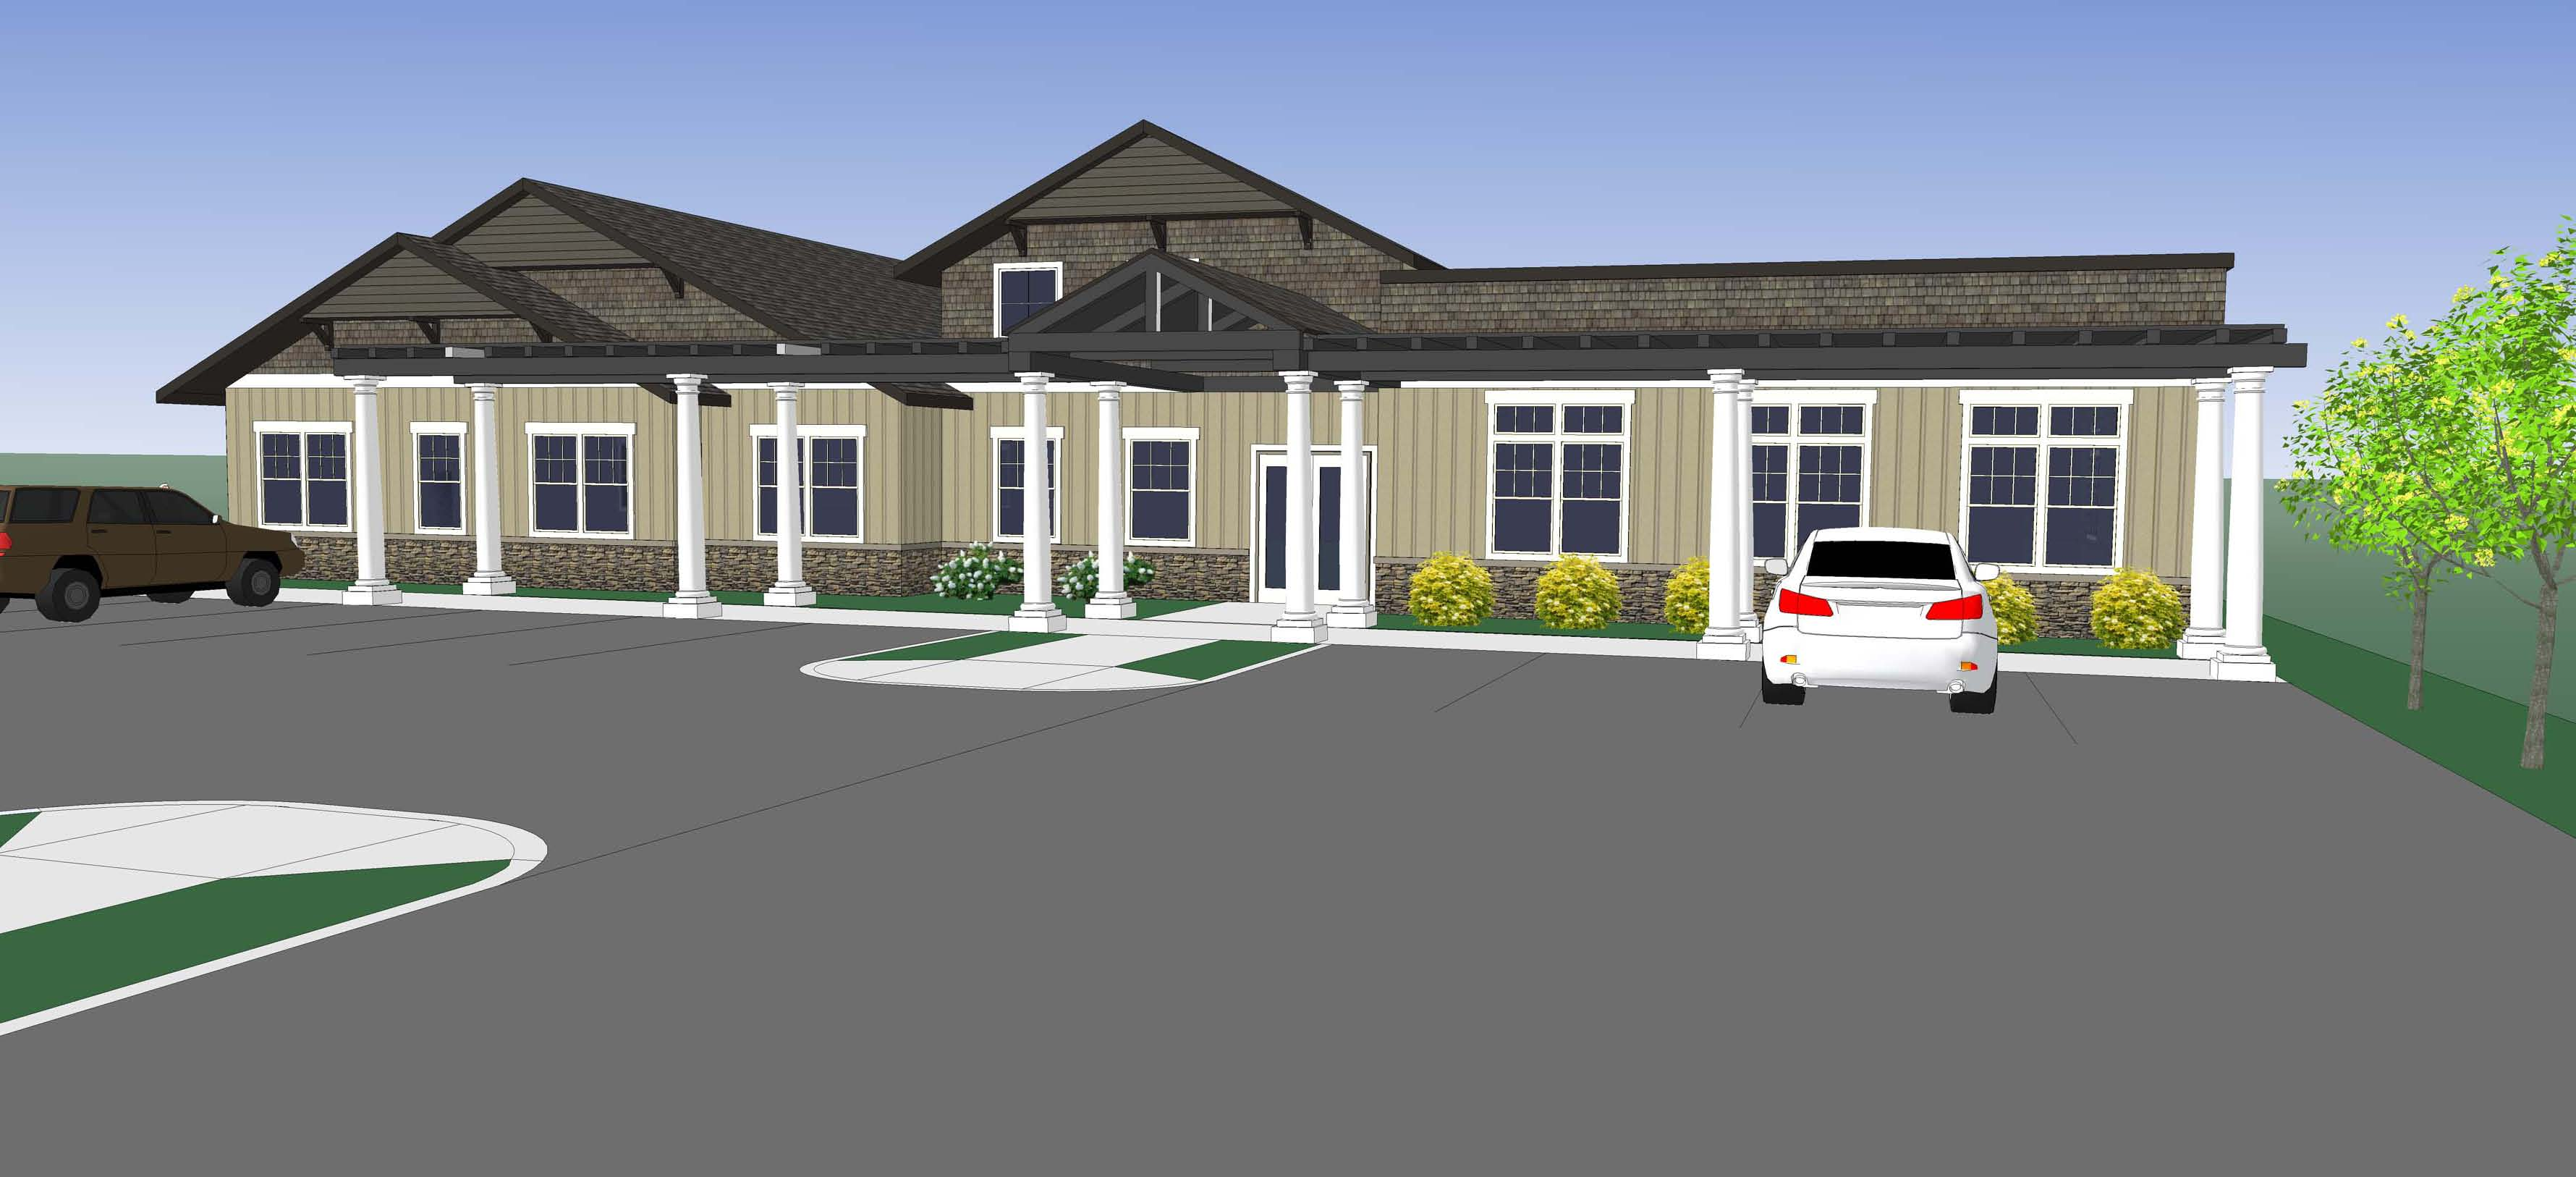 Rendering of Community's new grief center